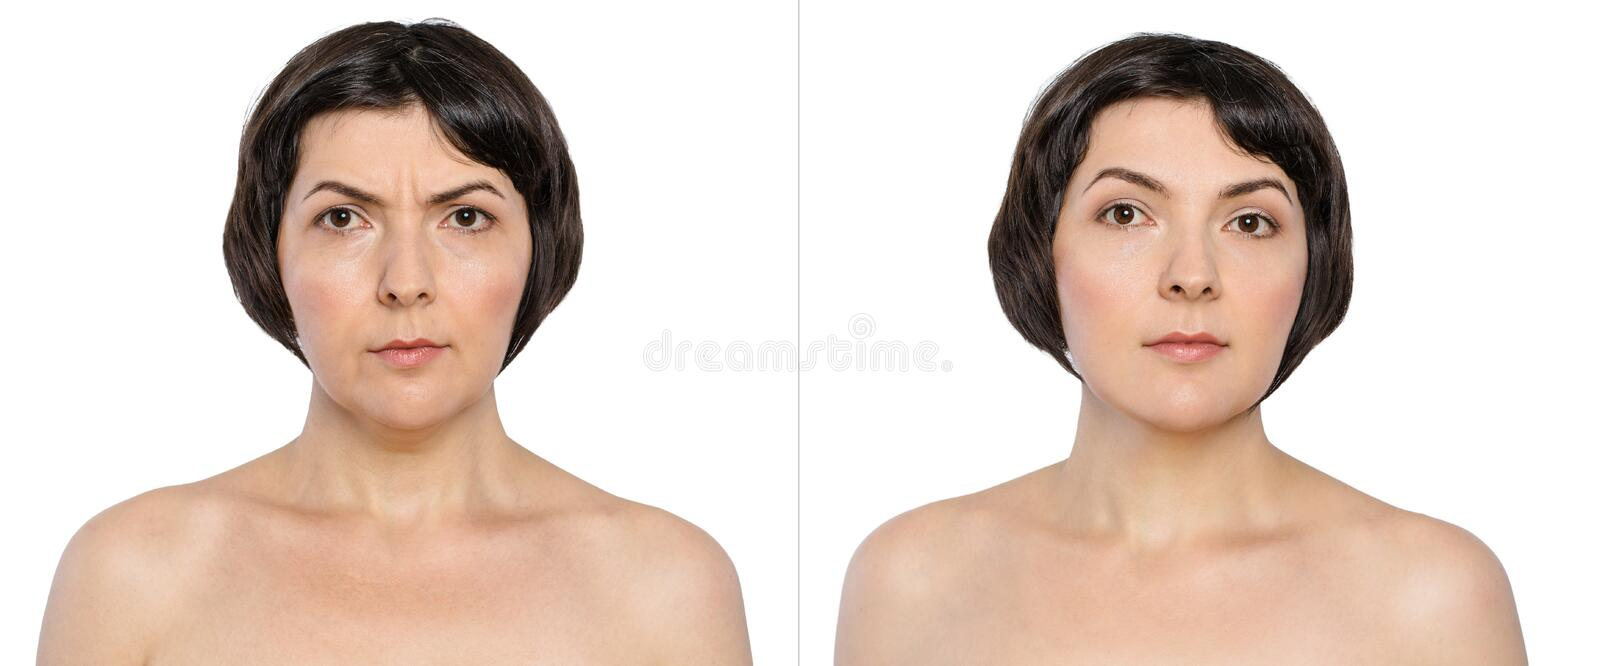 Woman with and without aging singes, double chin, worry wrinkles, nasolabial folds before and after cosmetic or plastic stock images